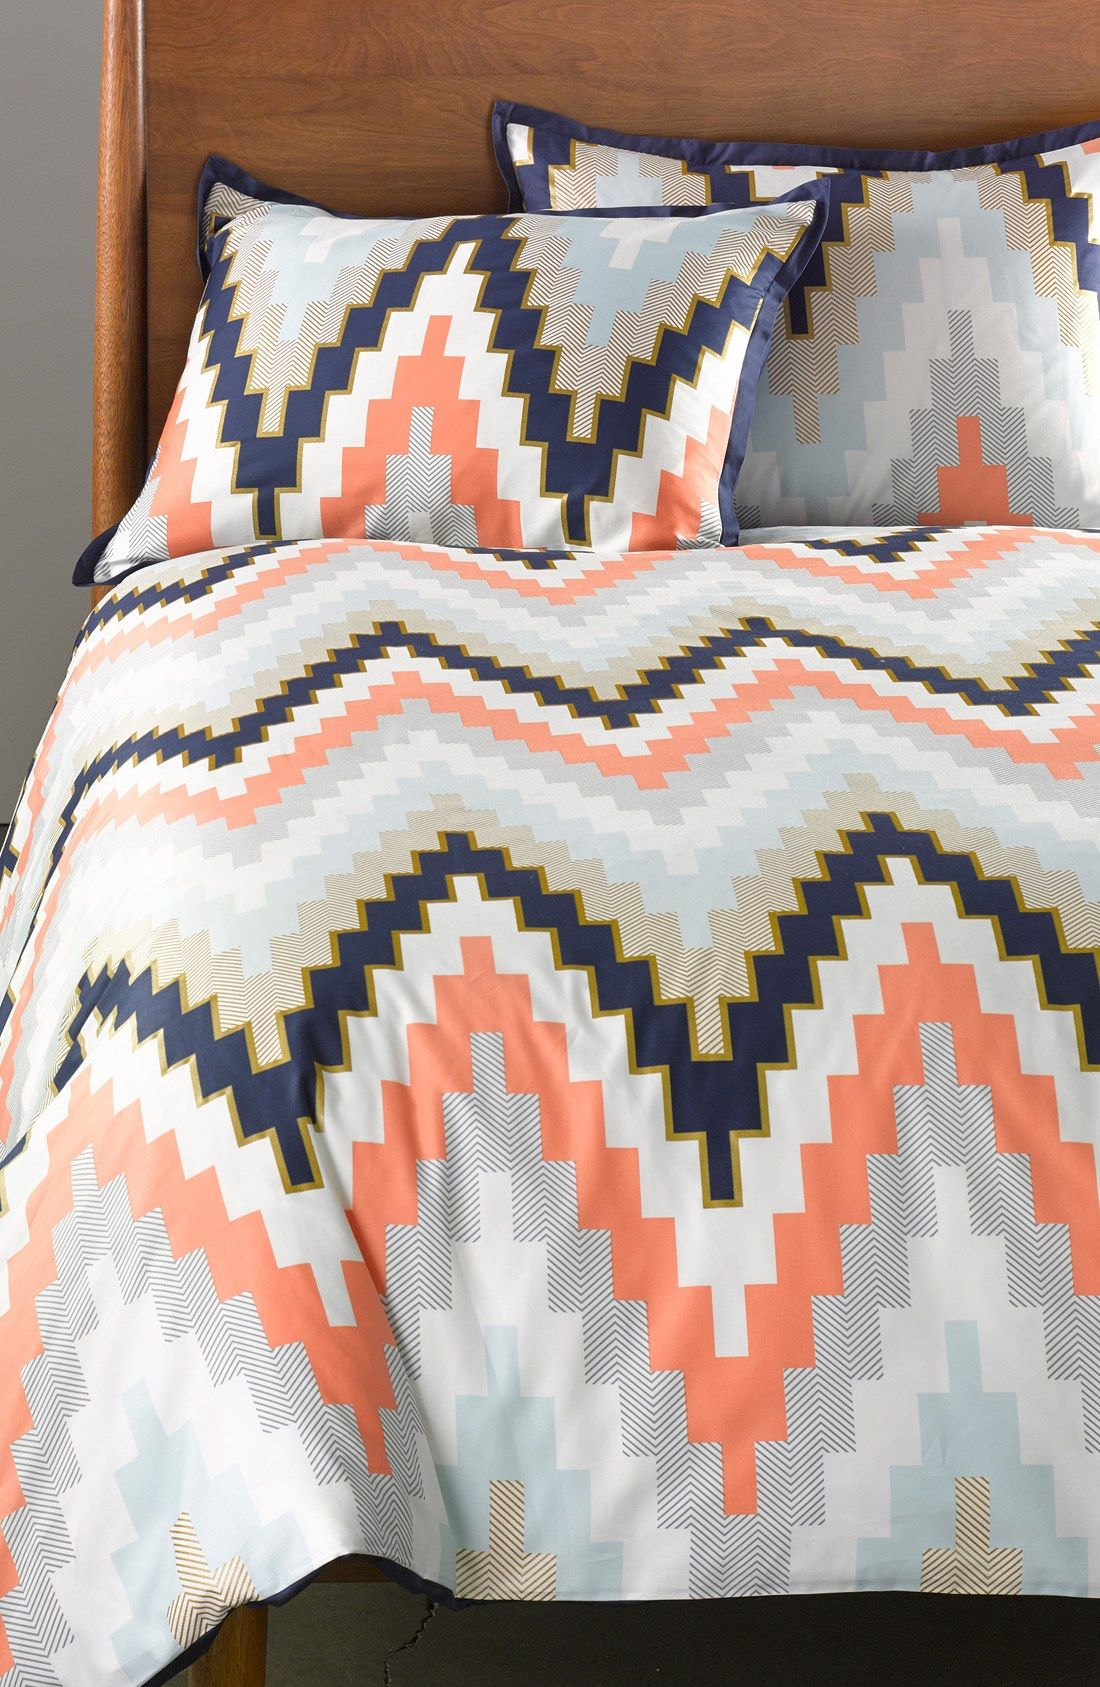 Beau Free Shipping And Returns On Blissliving Home U0027Harperu0027 Reversible Duvet Set  At Nordstrom.com. Grey Cotton Sateen Ripples With Pintucked Clusters On  This ...